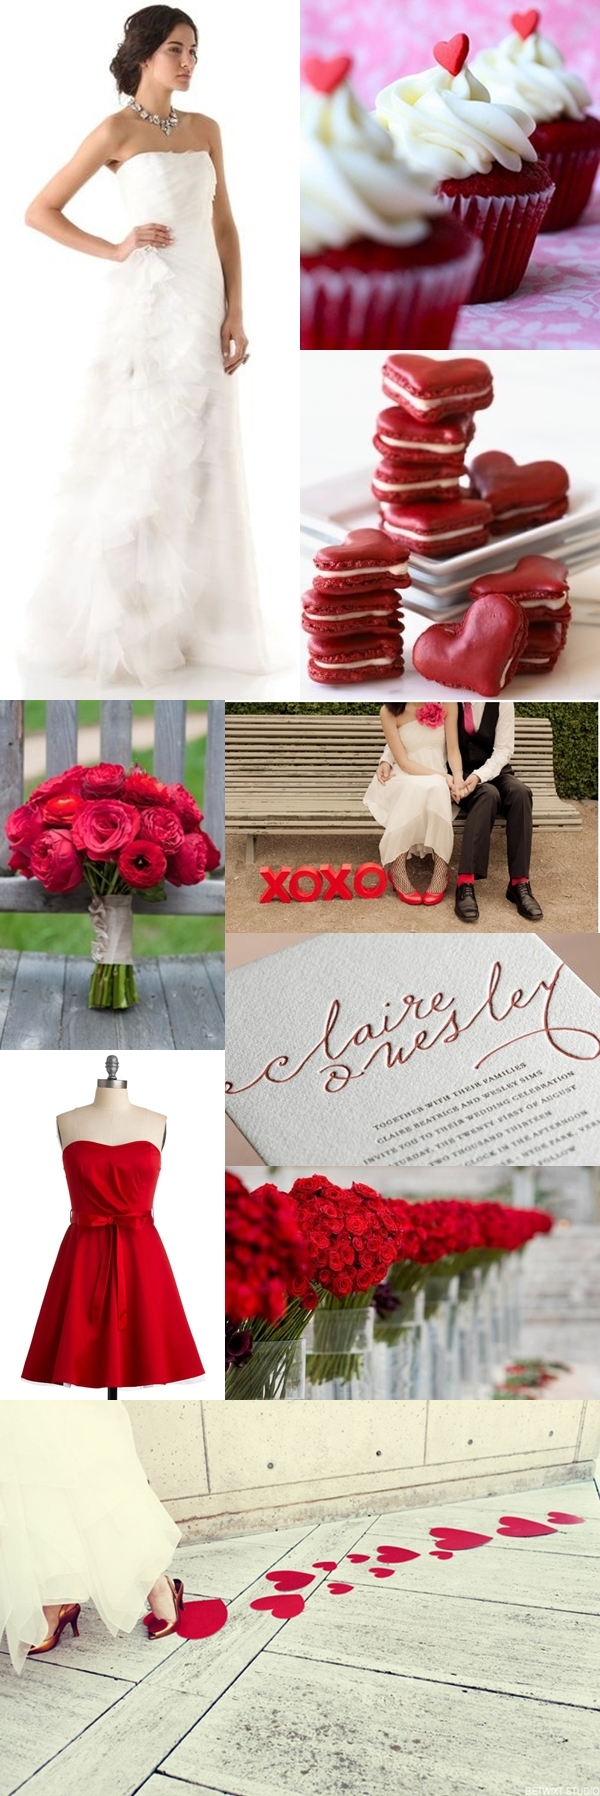 Weddings by Color - Shades of Red + White 02